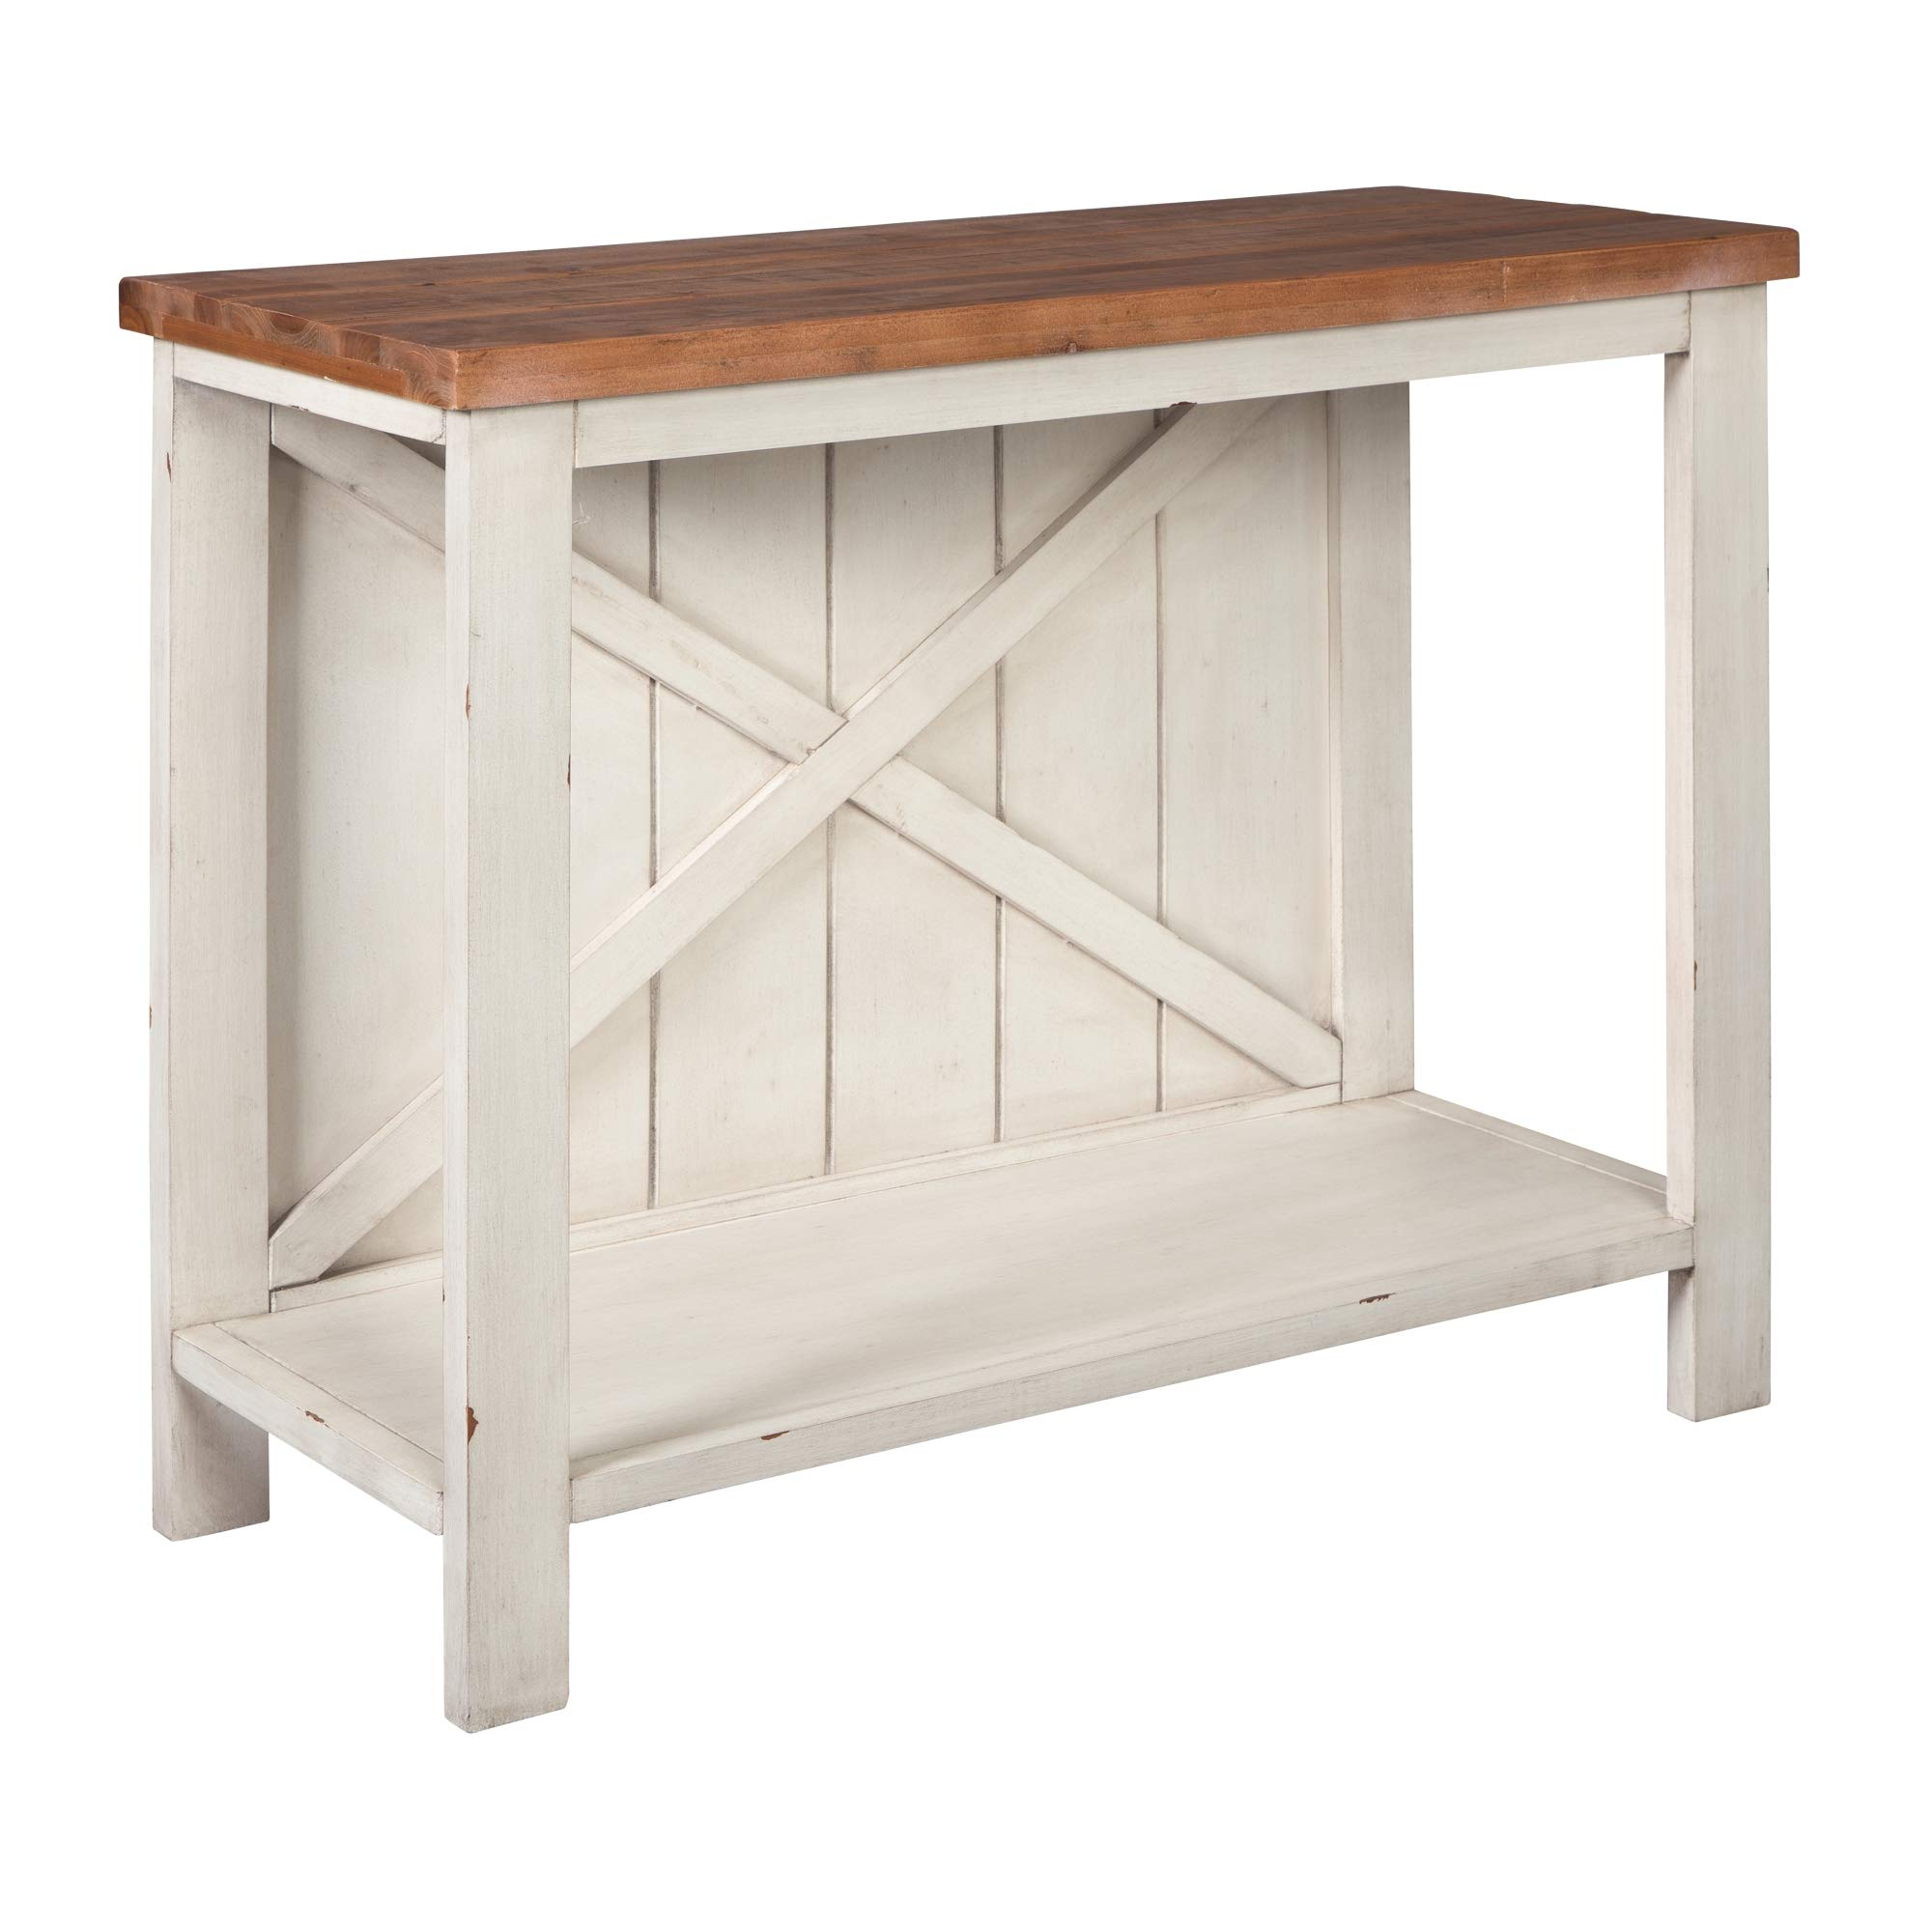 Ashley Furniture Signature Design - Abramsland Console Sofa Table - Casual - White/Brown by Signature Design by Ashley